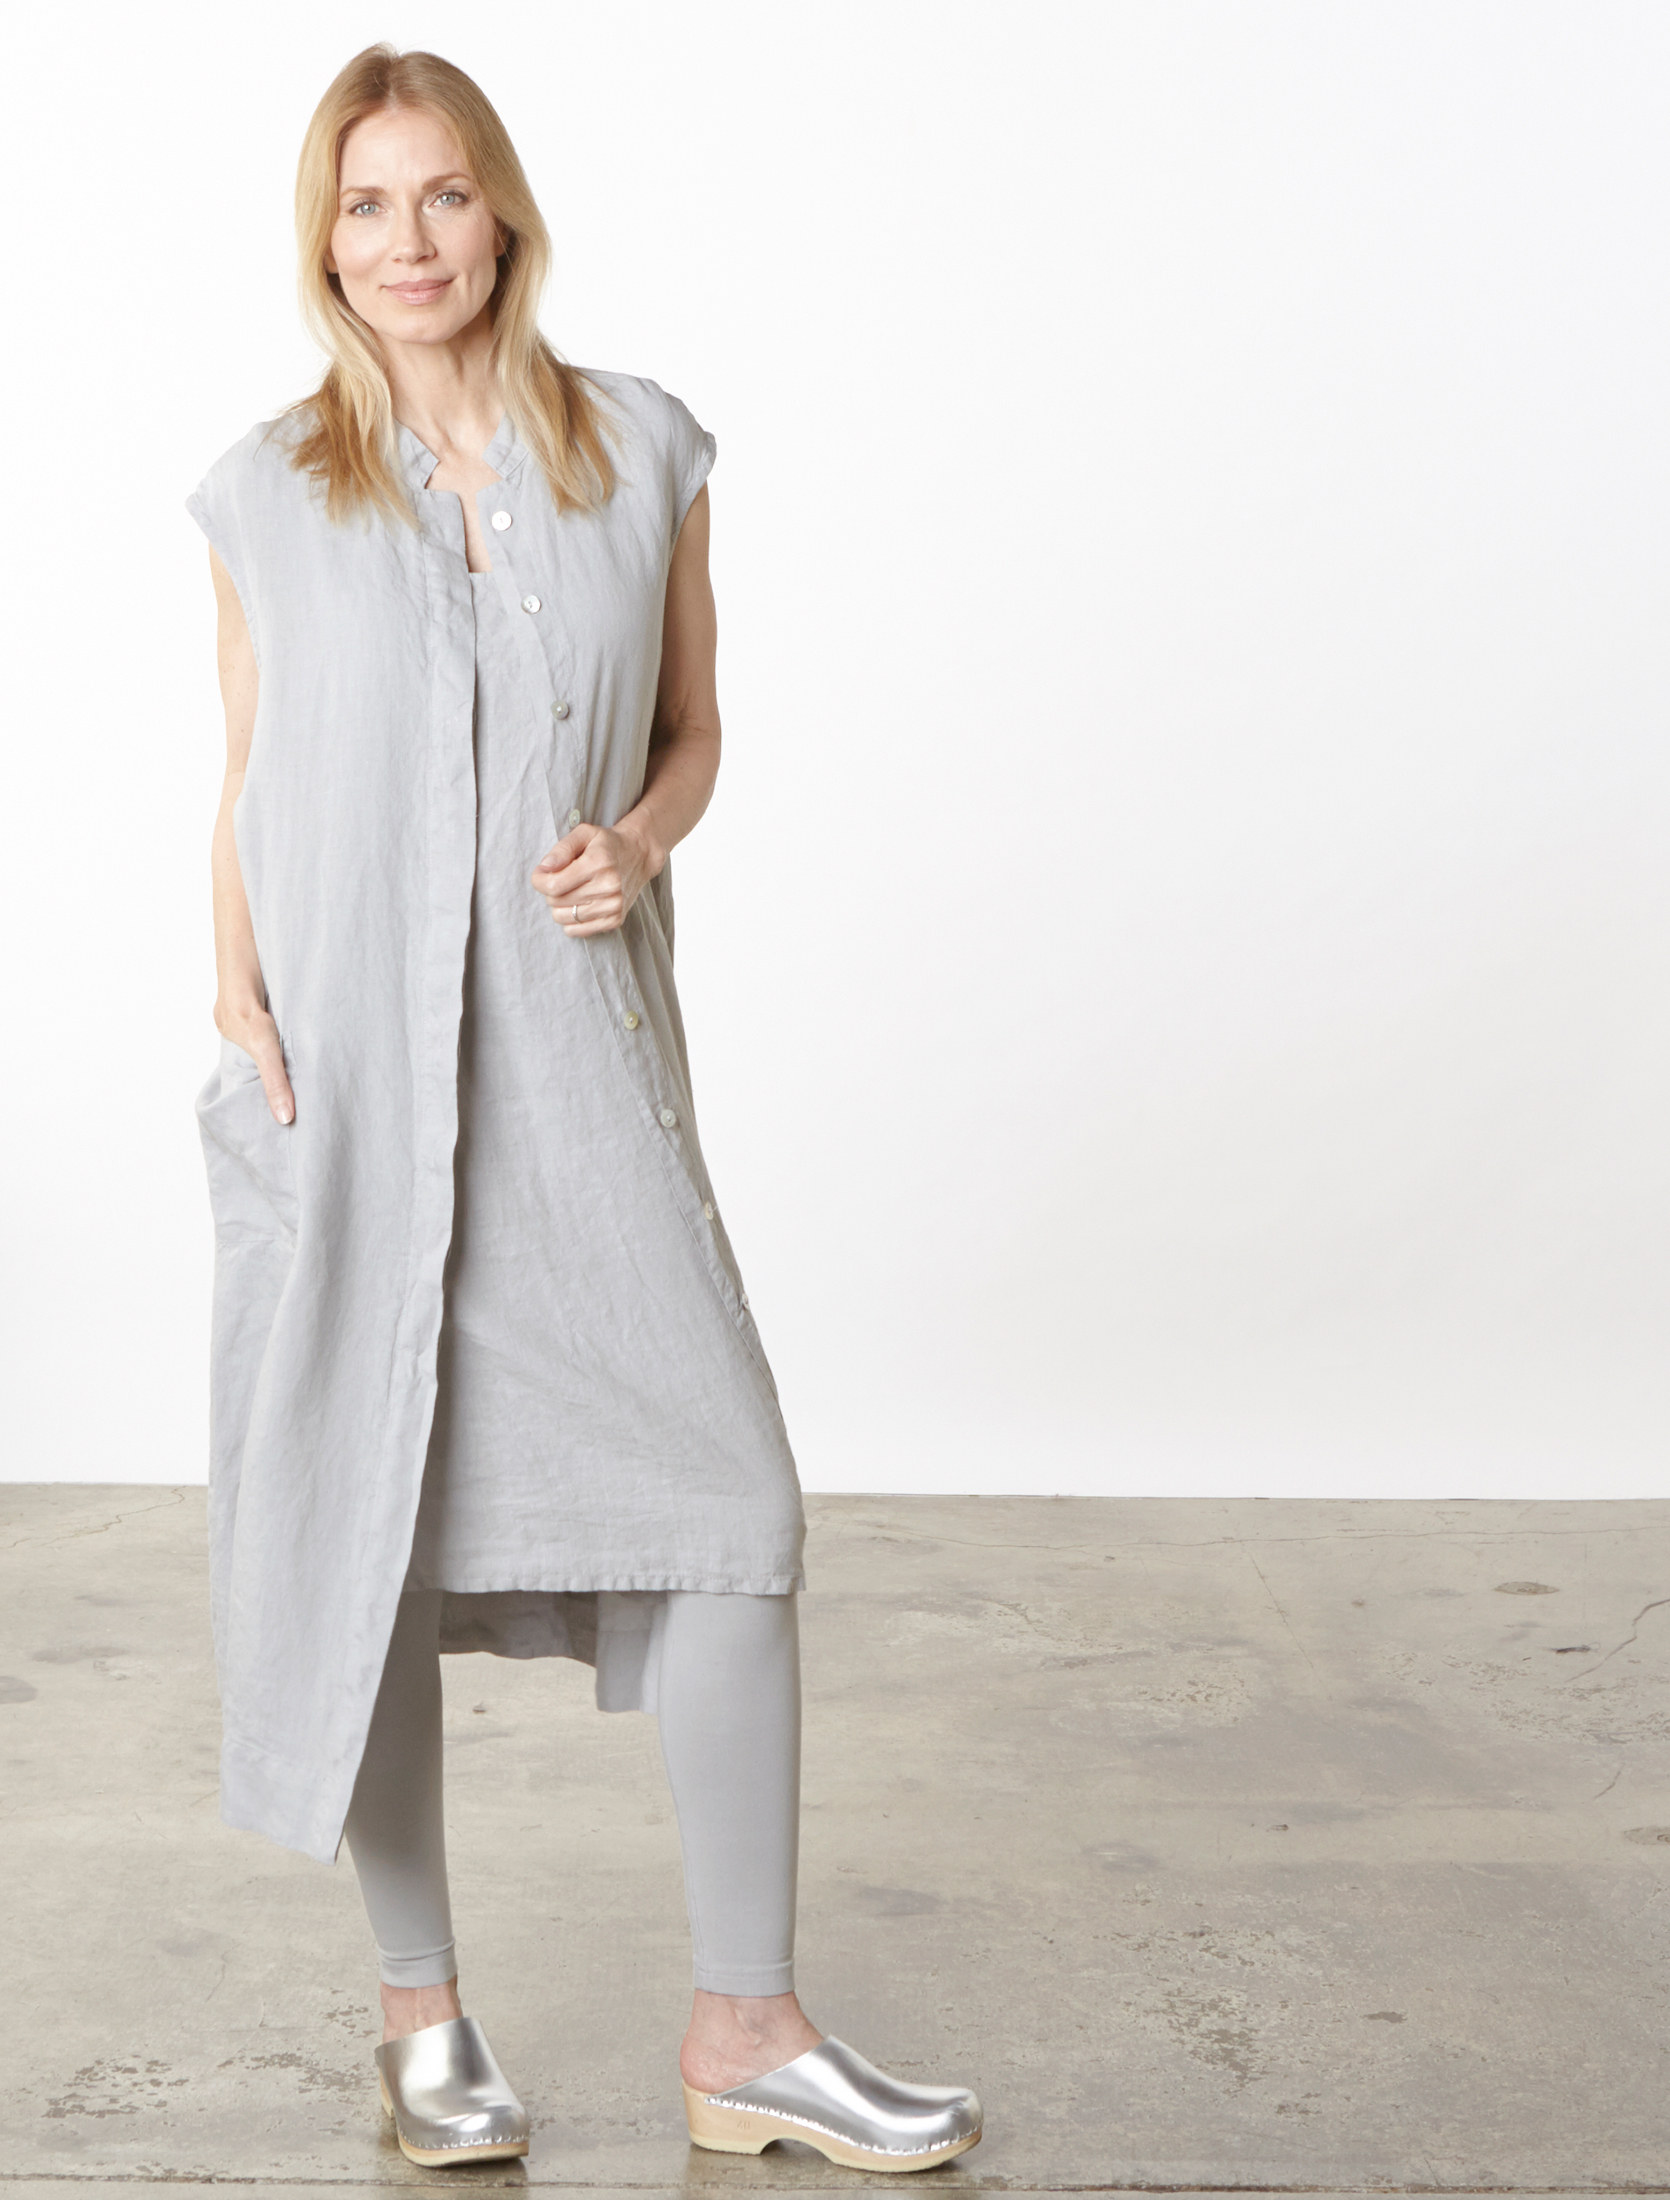 Keaton Vest, Luella Dress in Pier Light Linen, Legging in Pier Organic Bamboo Cotton